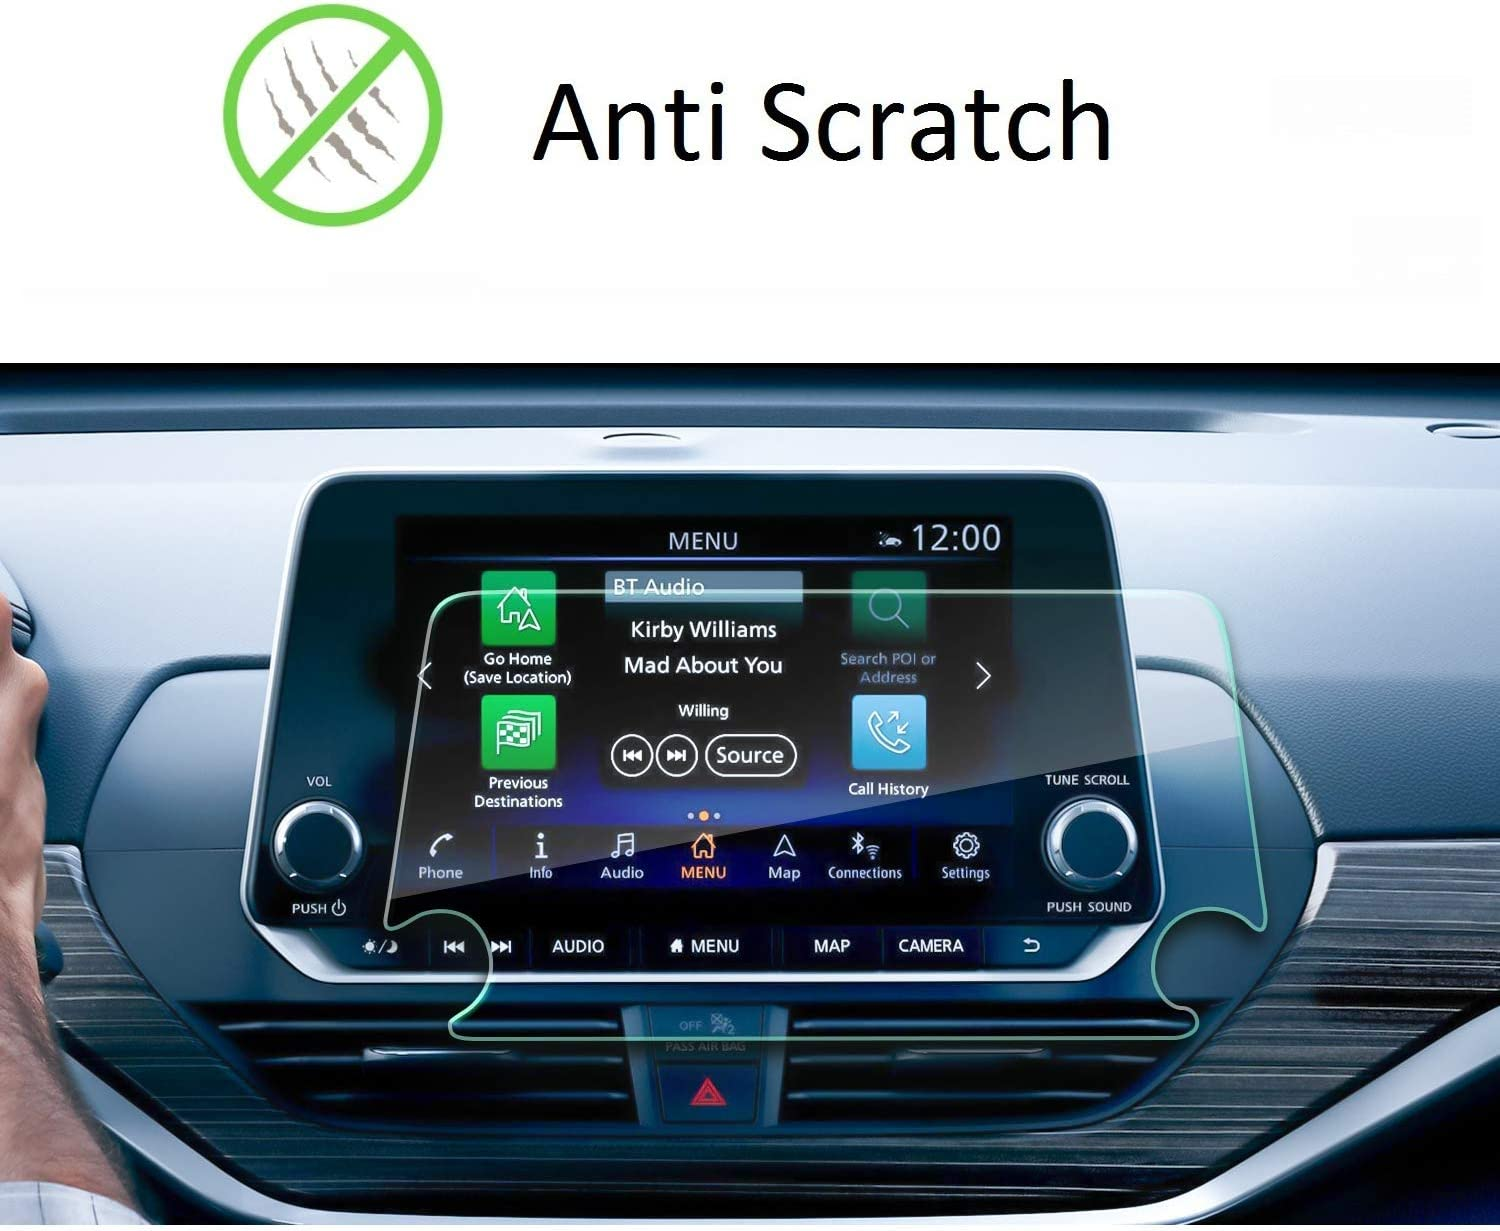 Screen Protector Compatible with Nissan Altima 8 inch Touch Screen,SATIS,2020 Nissan Altima,Shock-Resistant Navigation Accessories